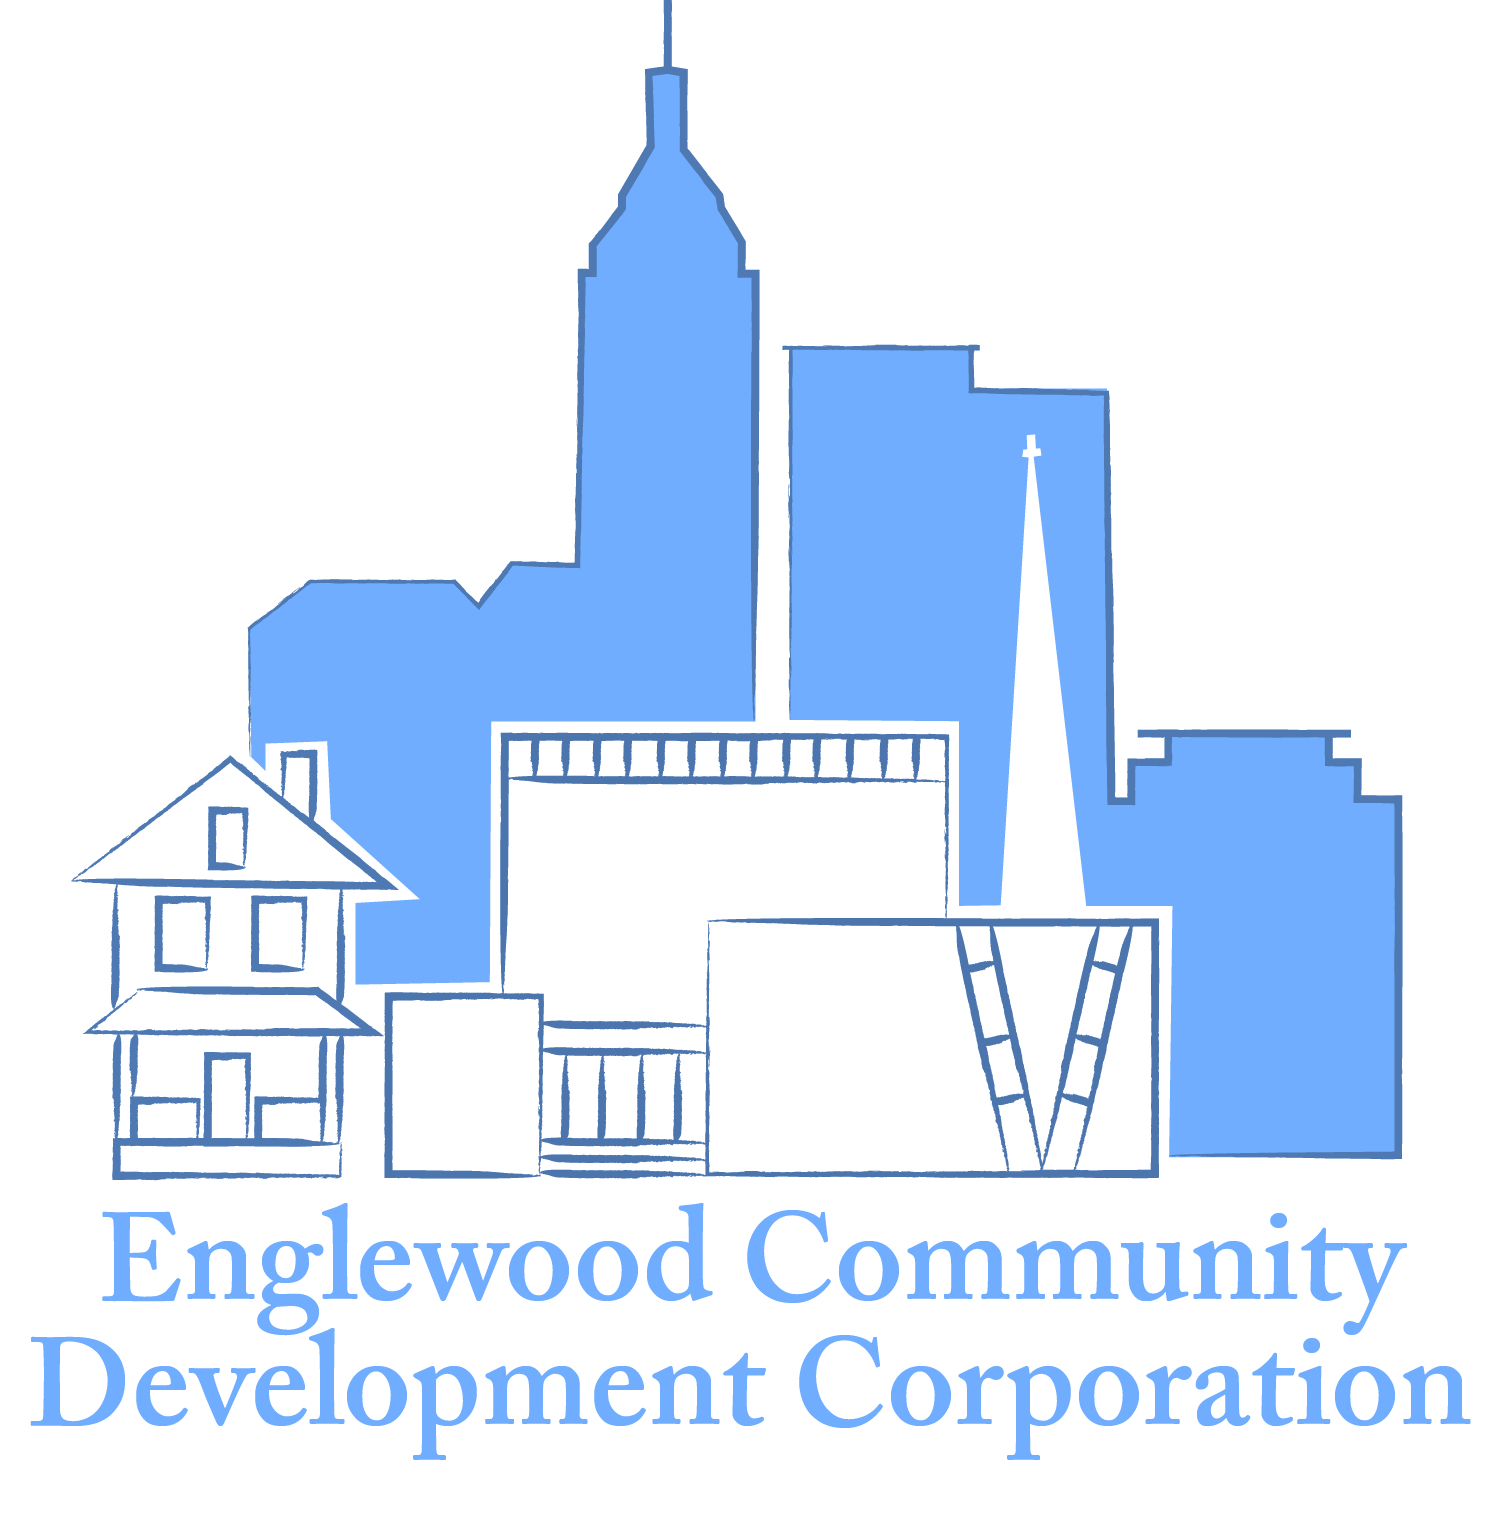 Englewood Community Development Corporation